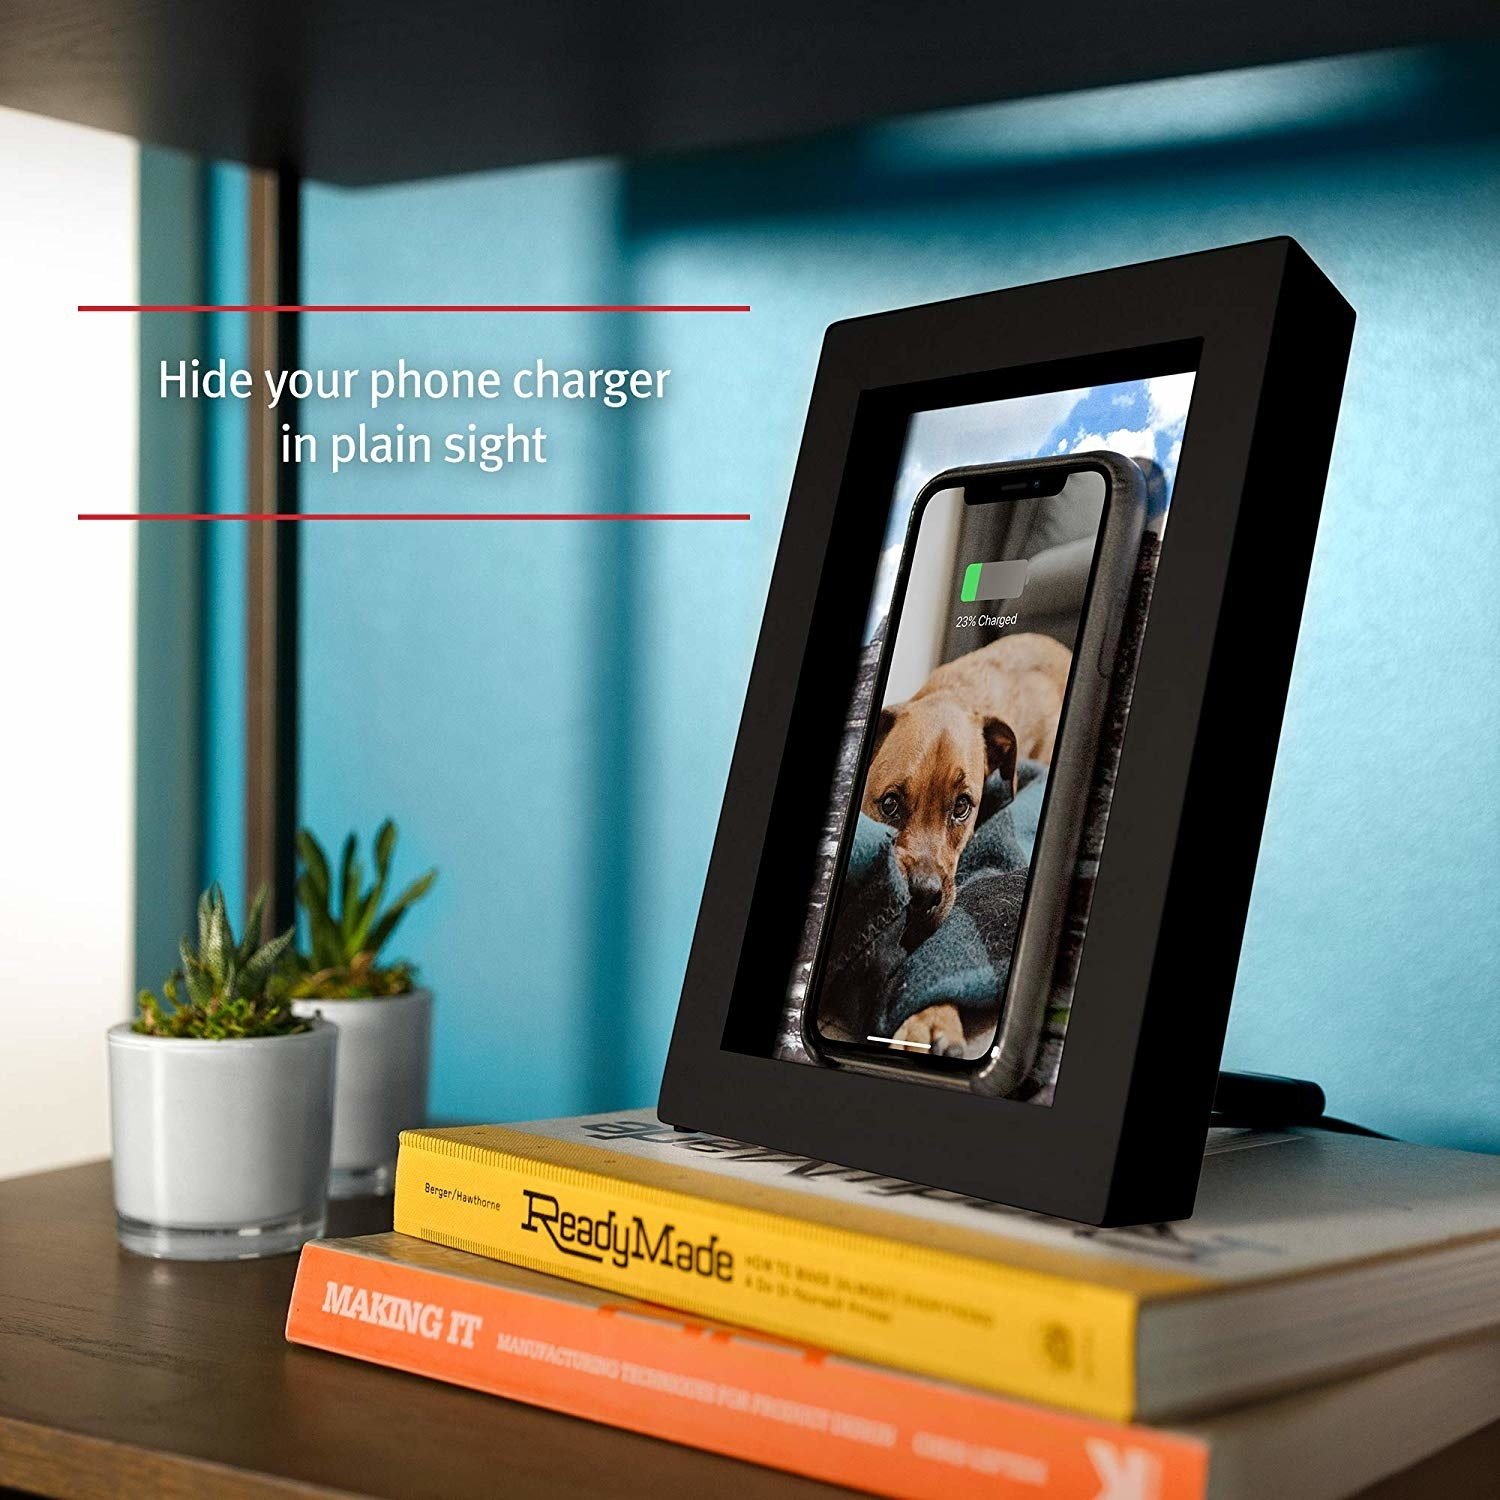 The black frame with a phone propped up inside, getting charged